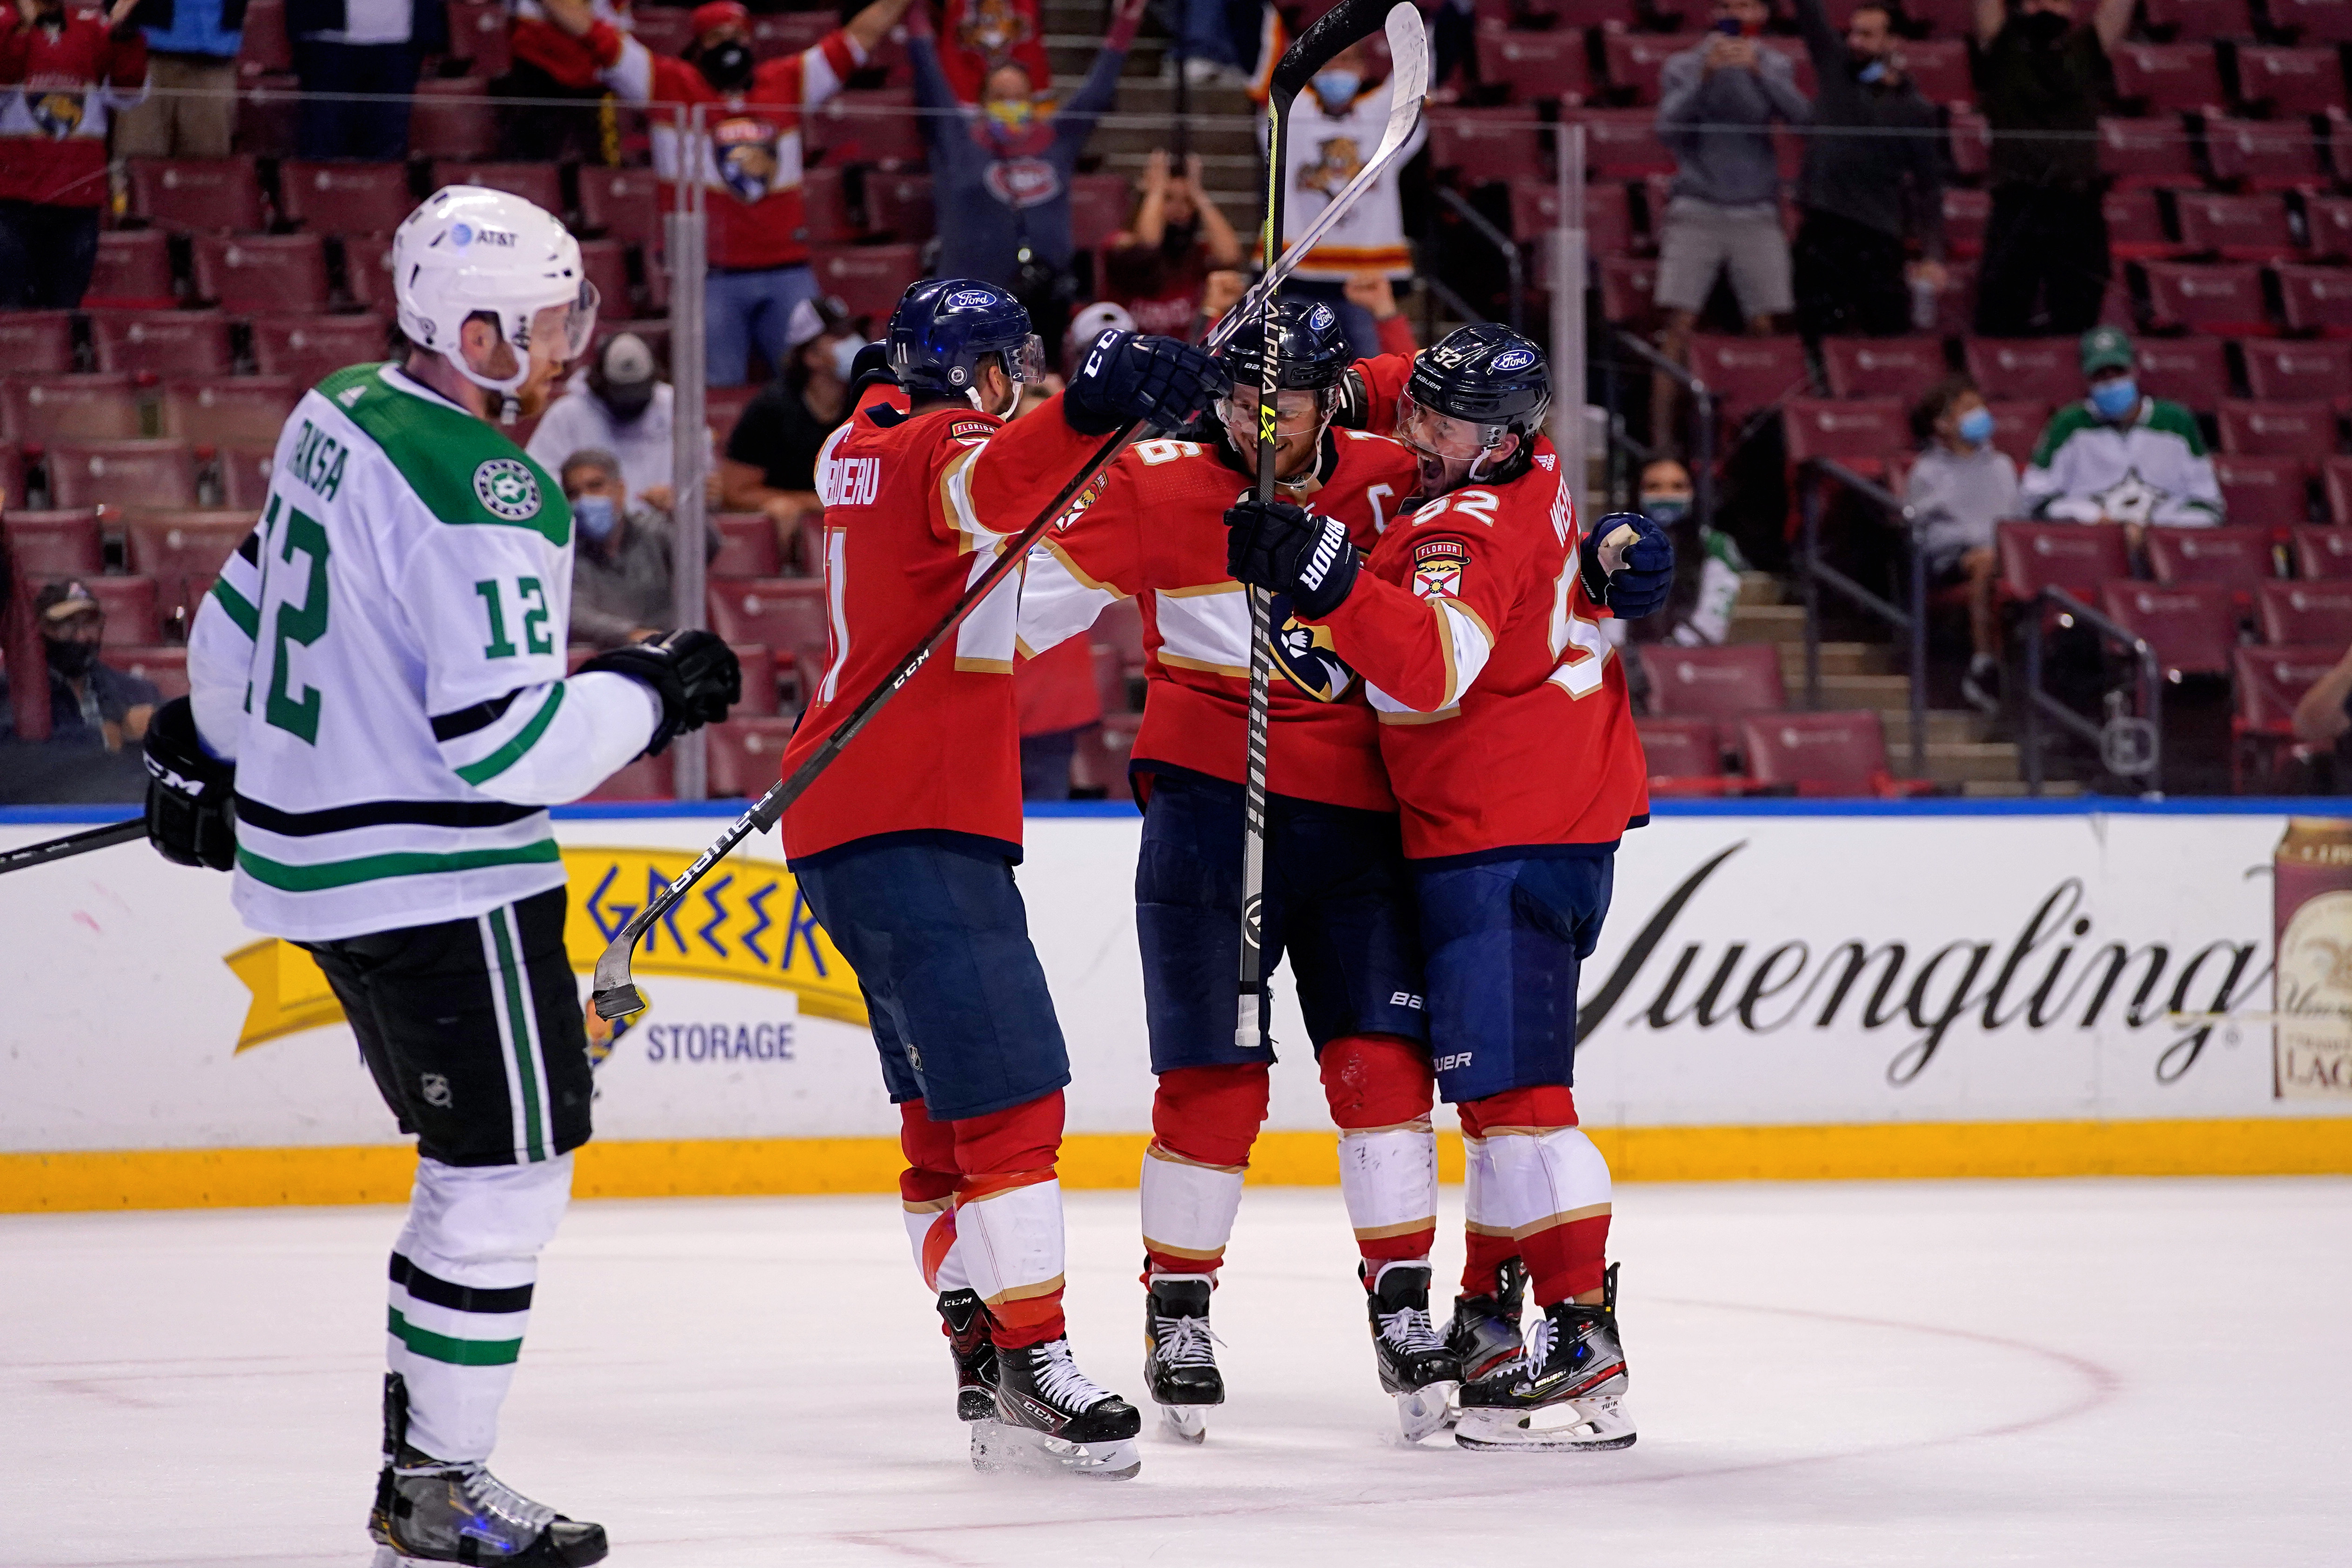 May 3, 2021; Sunrise, Florida, USA; Florida Panthers center Aleksander Barkov (16) celebrates with teammates after scoring the game winning goal in the overtime period against the Dallas Stars at BB&T Center. Mandatory Credit: Jasen Vinlove-USA TODAY Sports